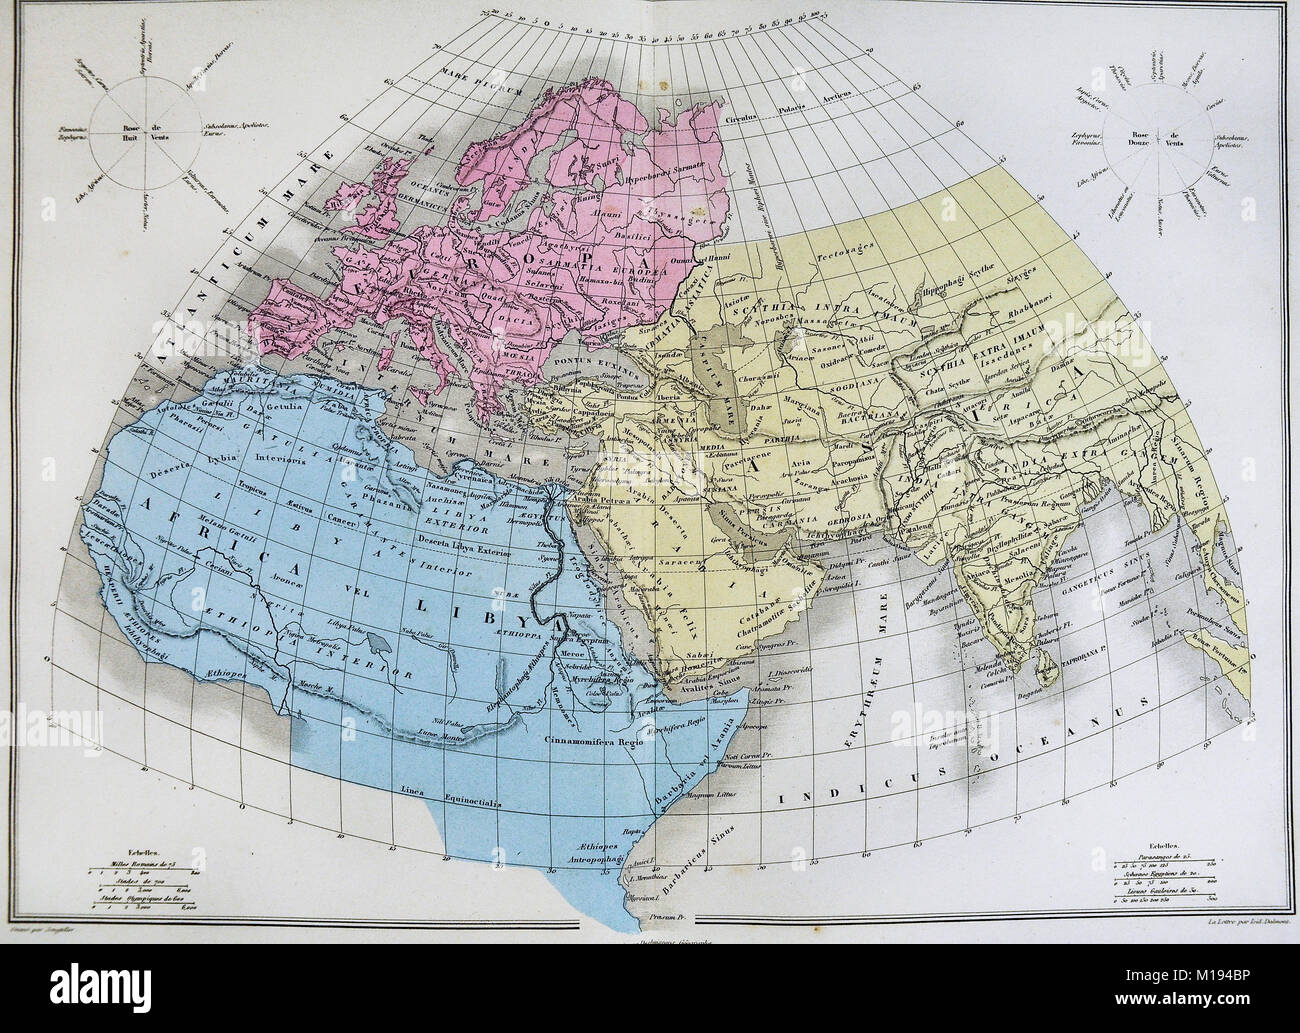 1877 migeon map ancient world europe africa asia stock photo 1877 migeon map ancient world europe africa asia gumiabroncs Gallery